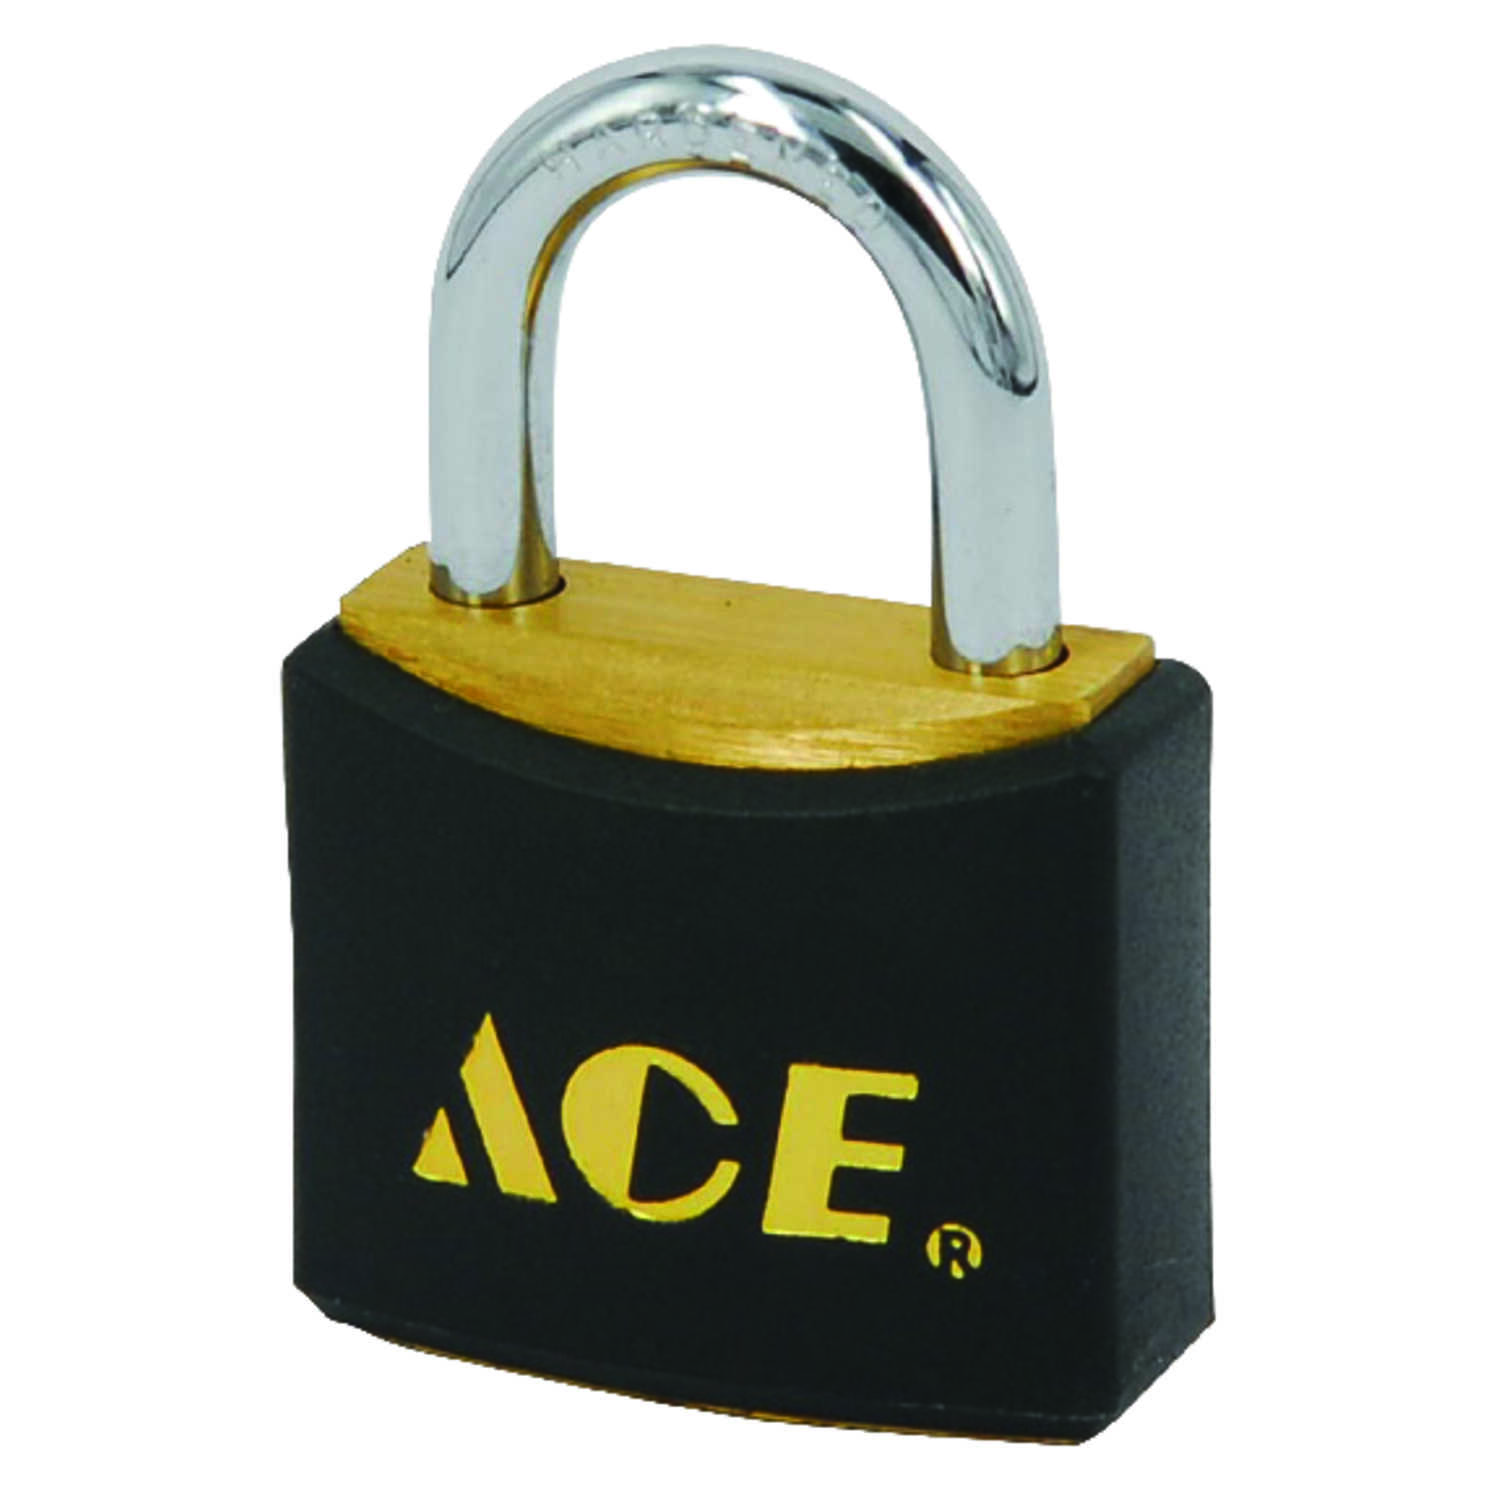 Ace  1 in. H x 1 in. W x 1/2 in. L Brass  Pin Tumbler  Padlock  2 pk Keyed Alike